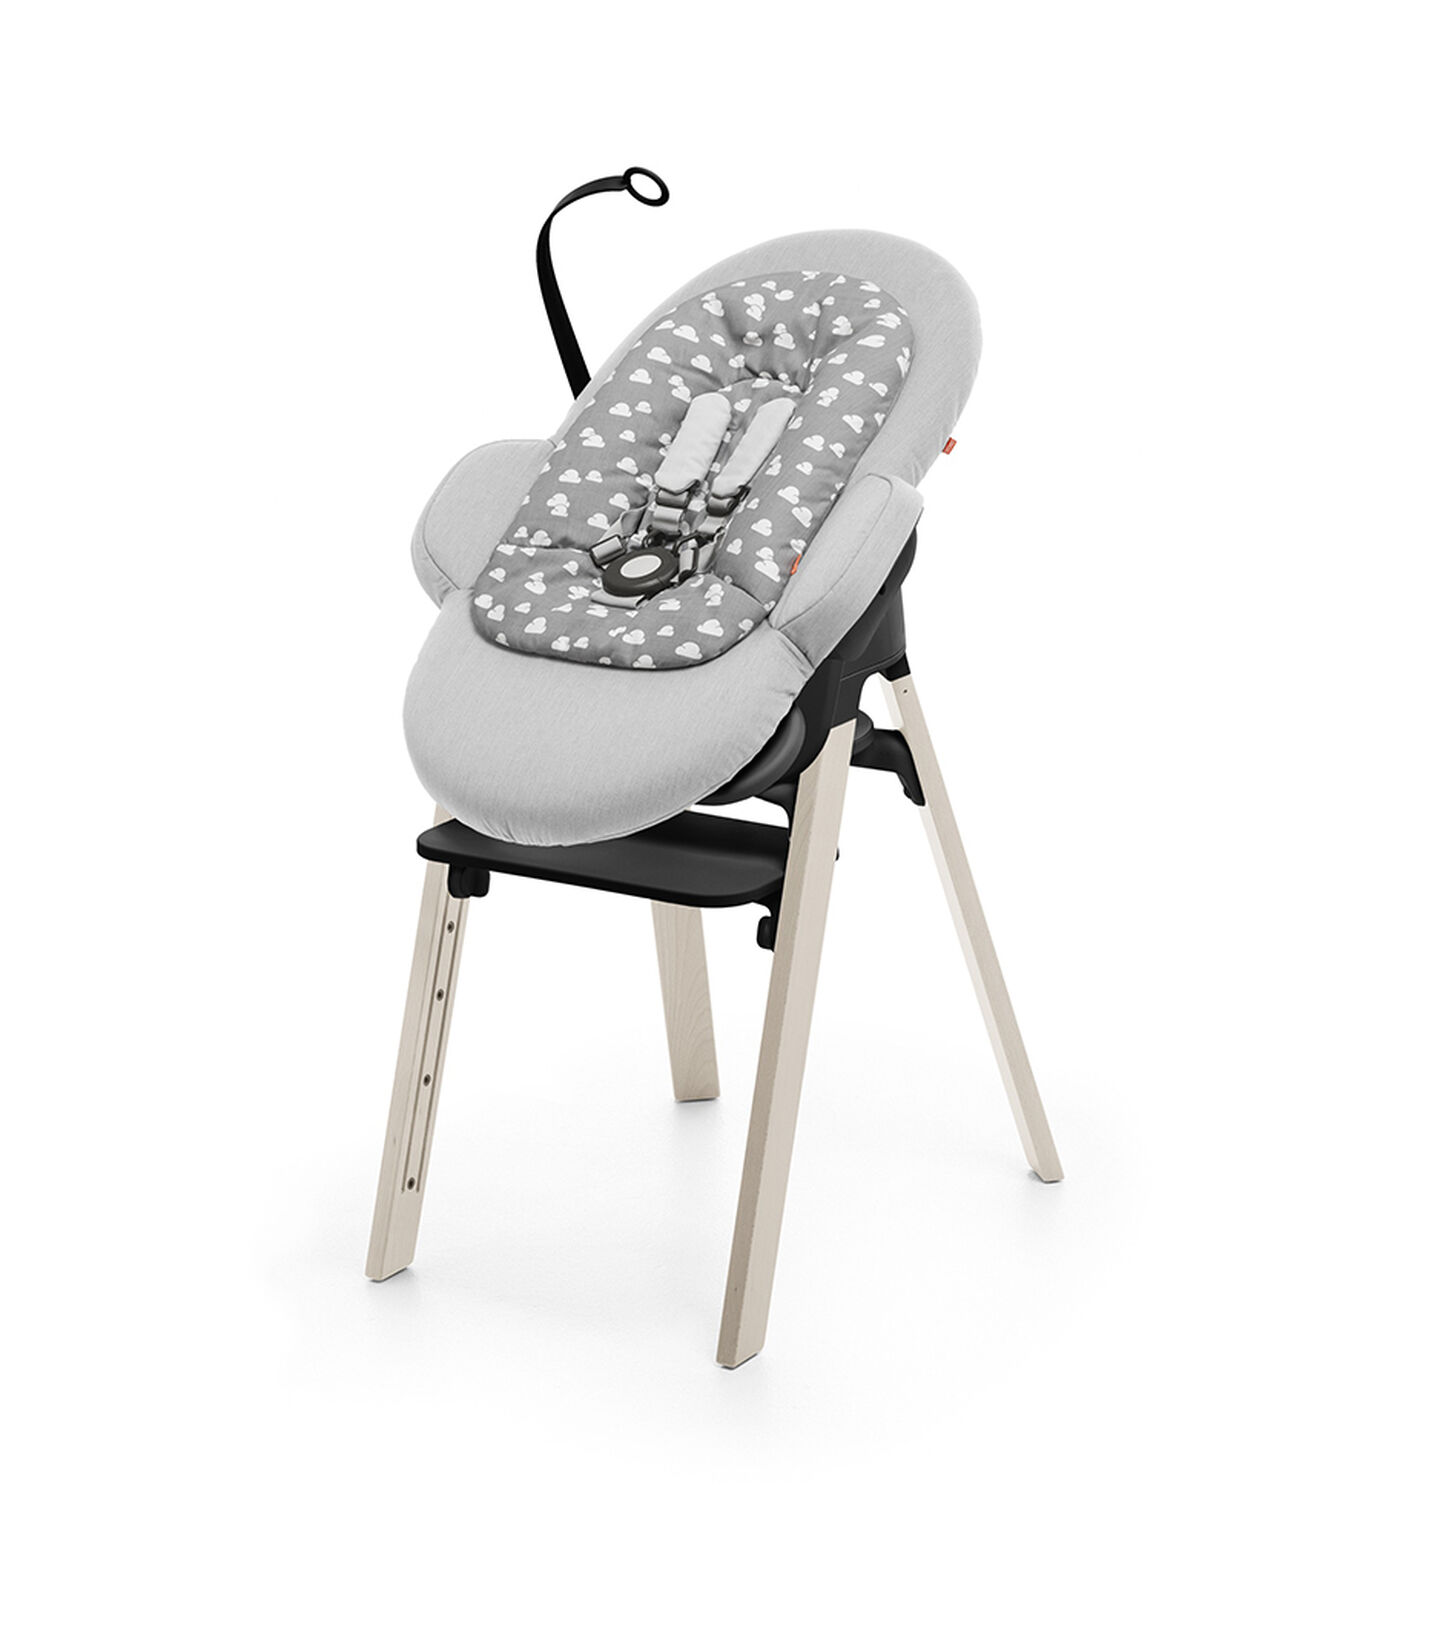 Stokke steps chair black seat whitewash legs for Chaise haute stokke